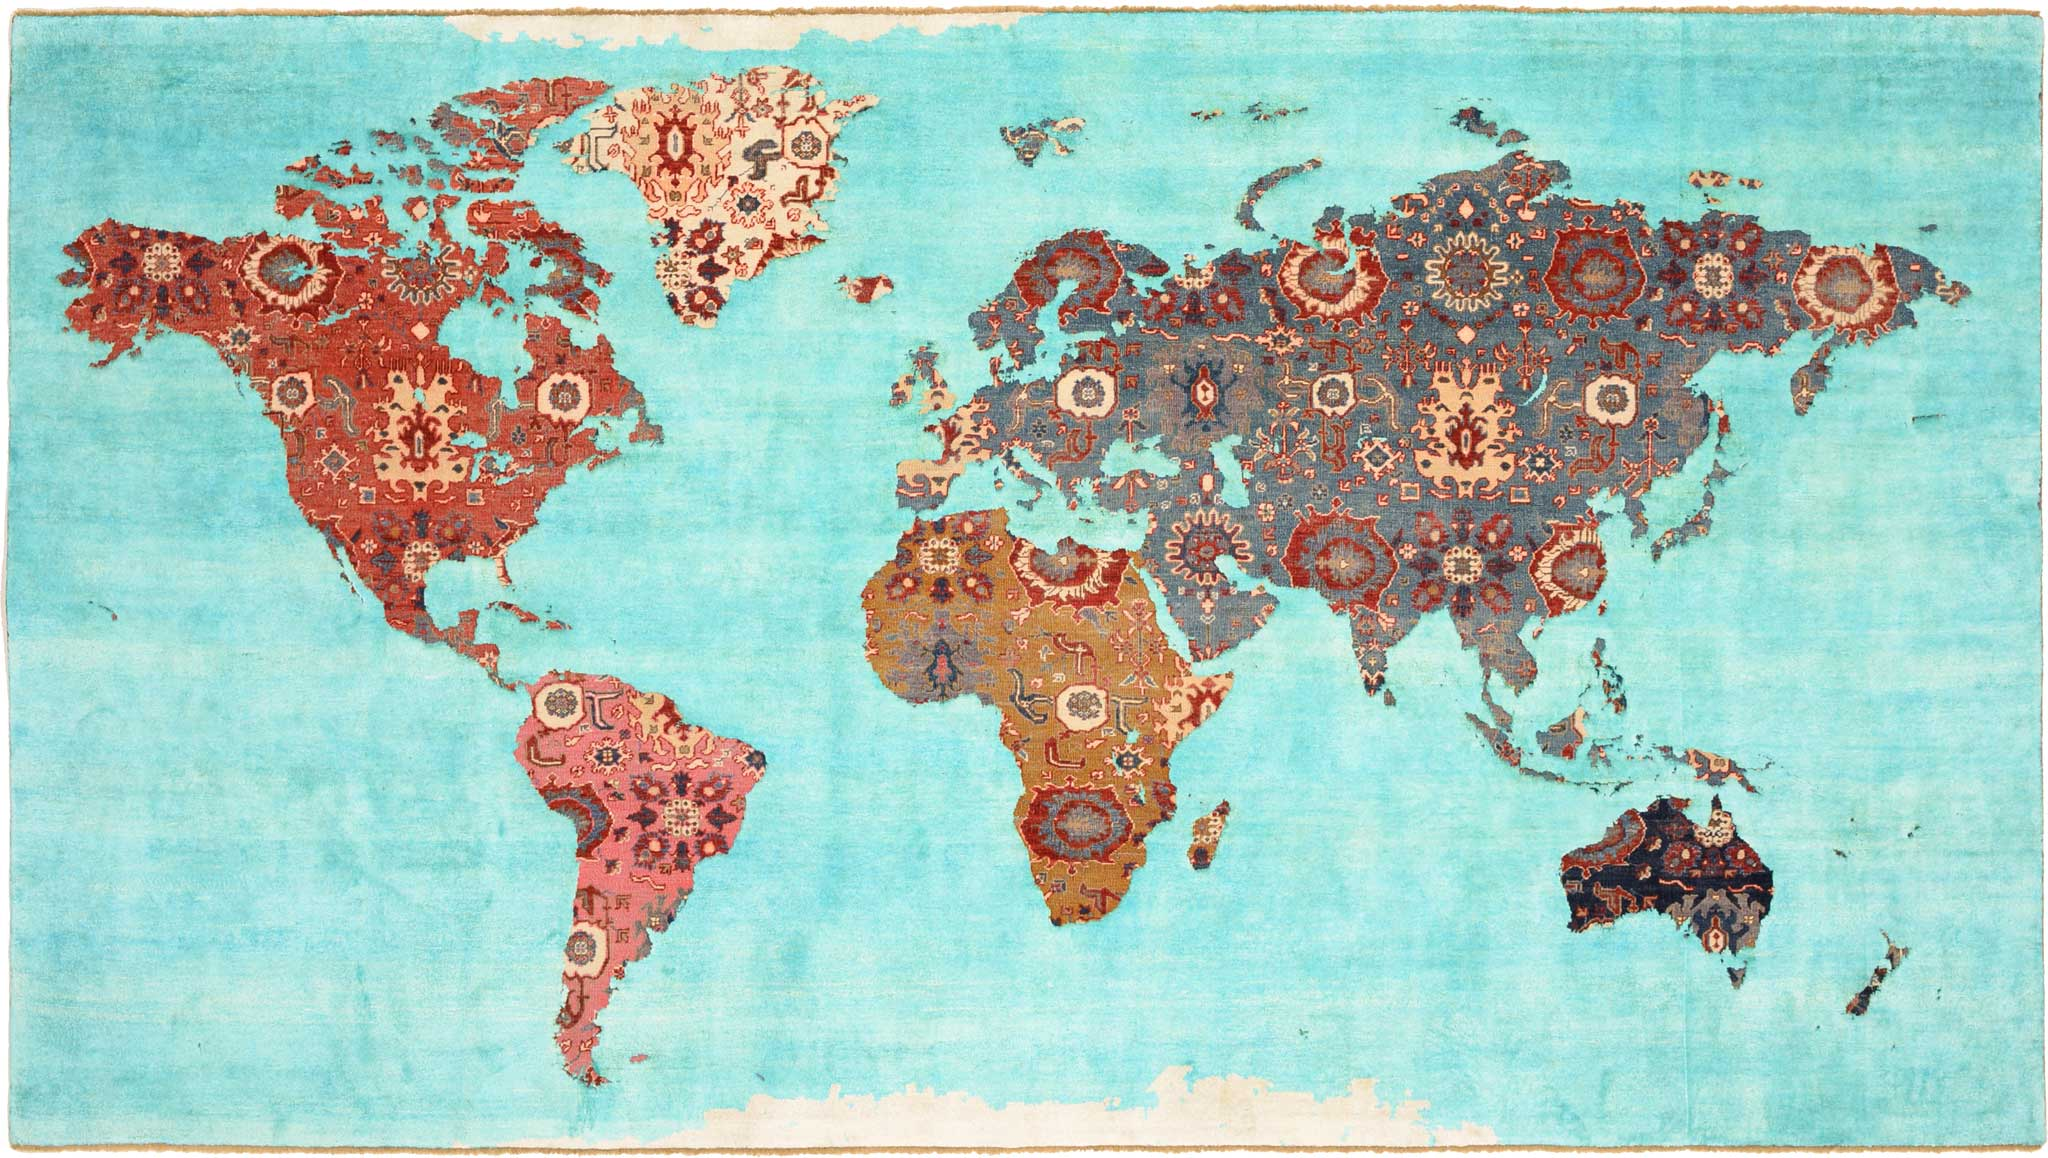 'World Map' by Jan Kath. Created as a carpet novelty in the style of the firm's 'Erased Heritage' Collection. | Image courtesy of Jan Kath.